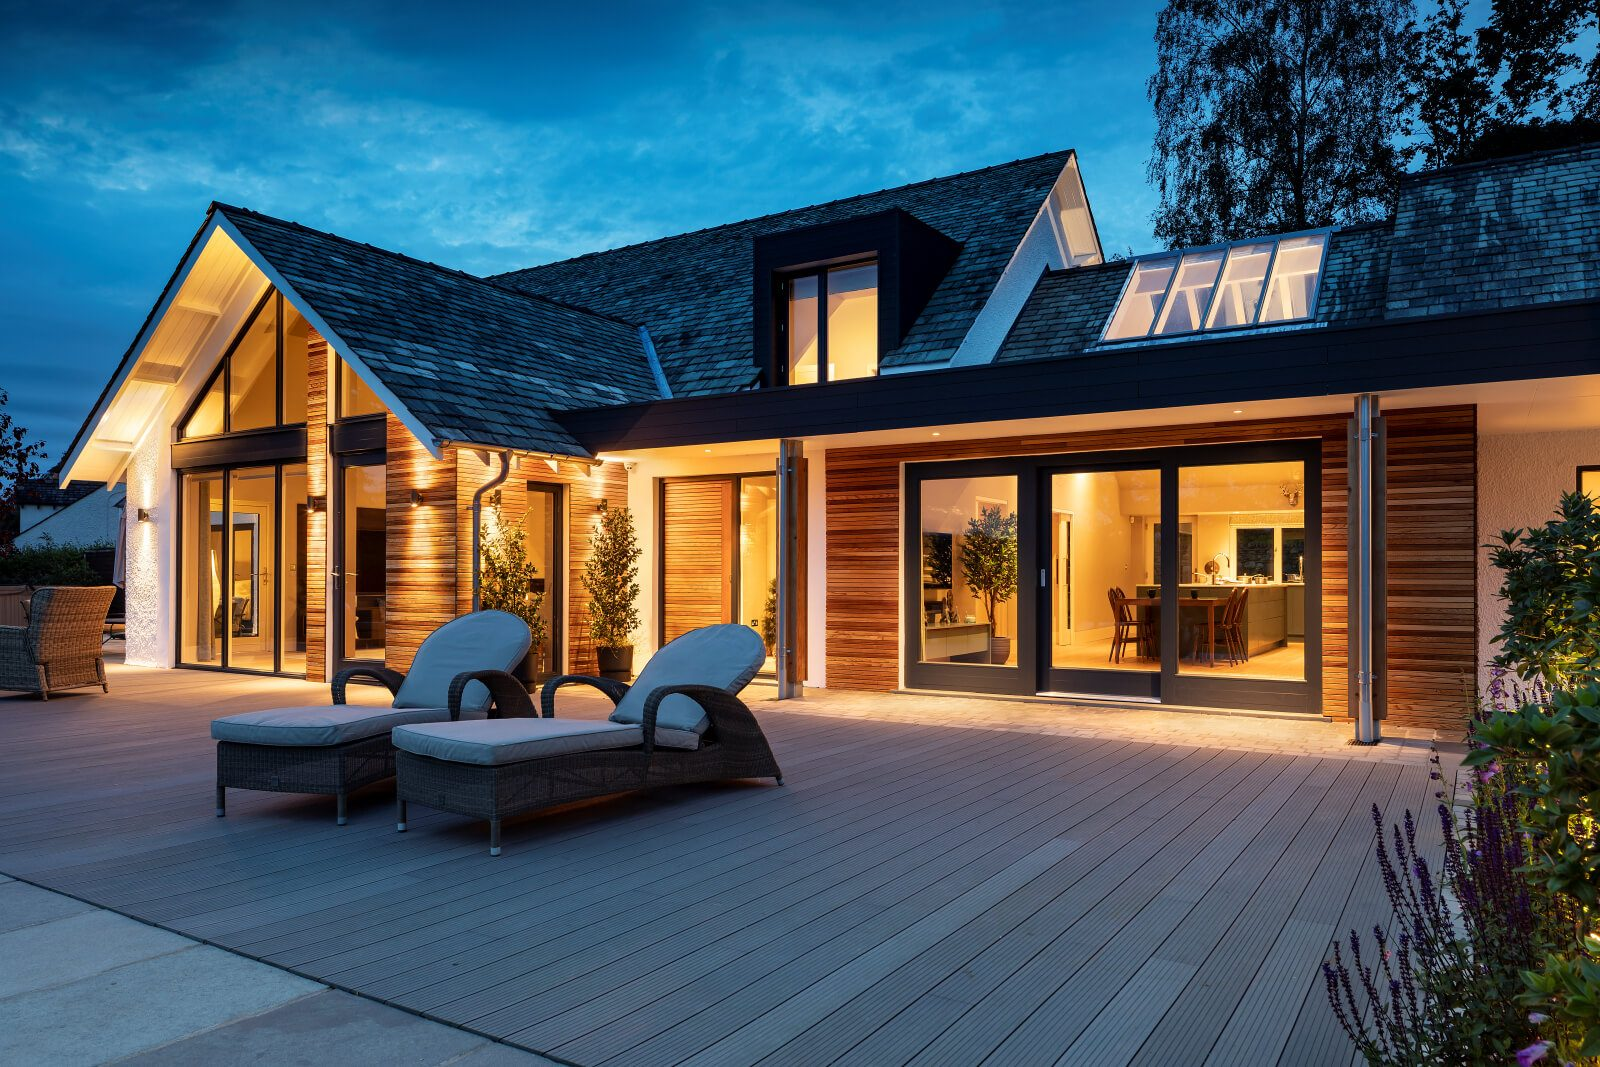 External lighting and decking for a converted Lakeland bungalow